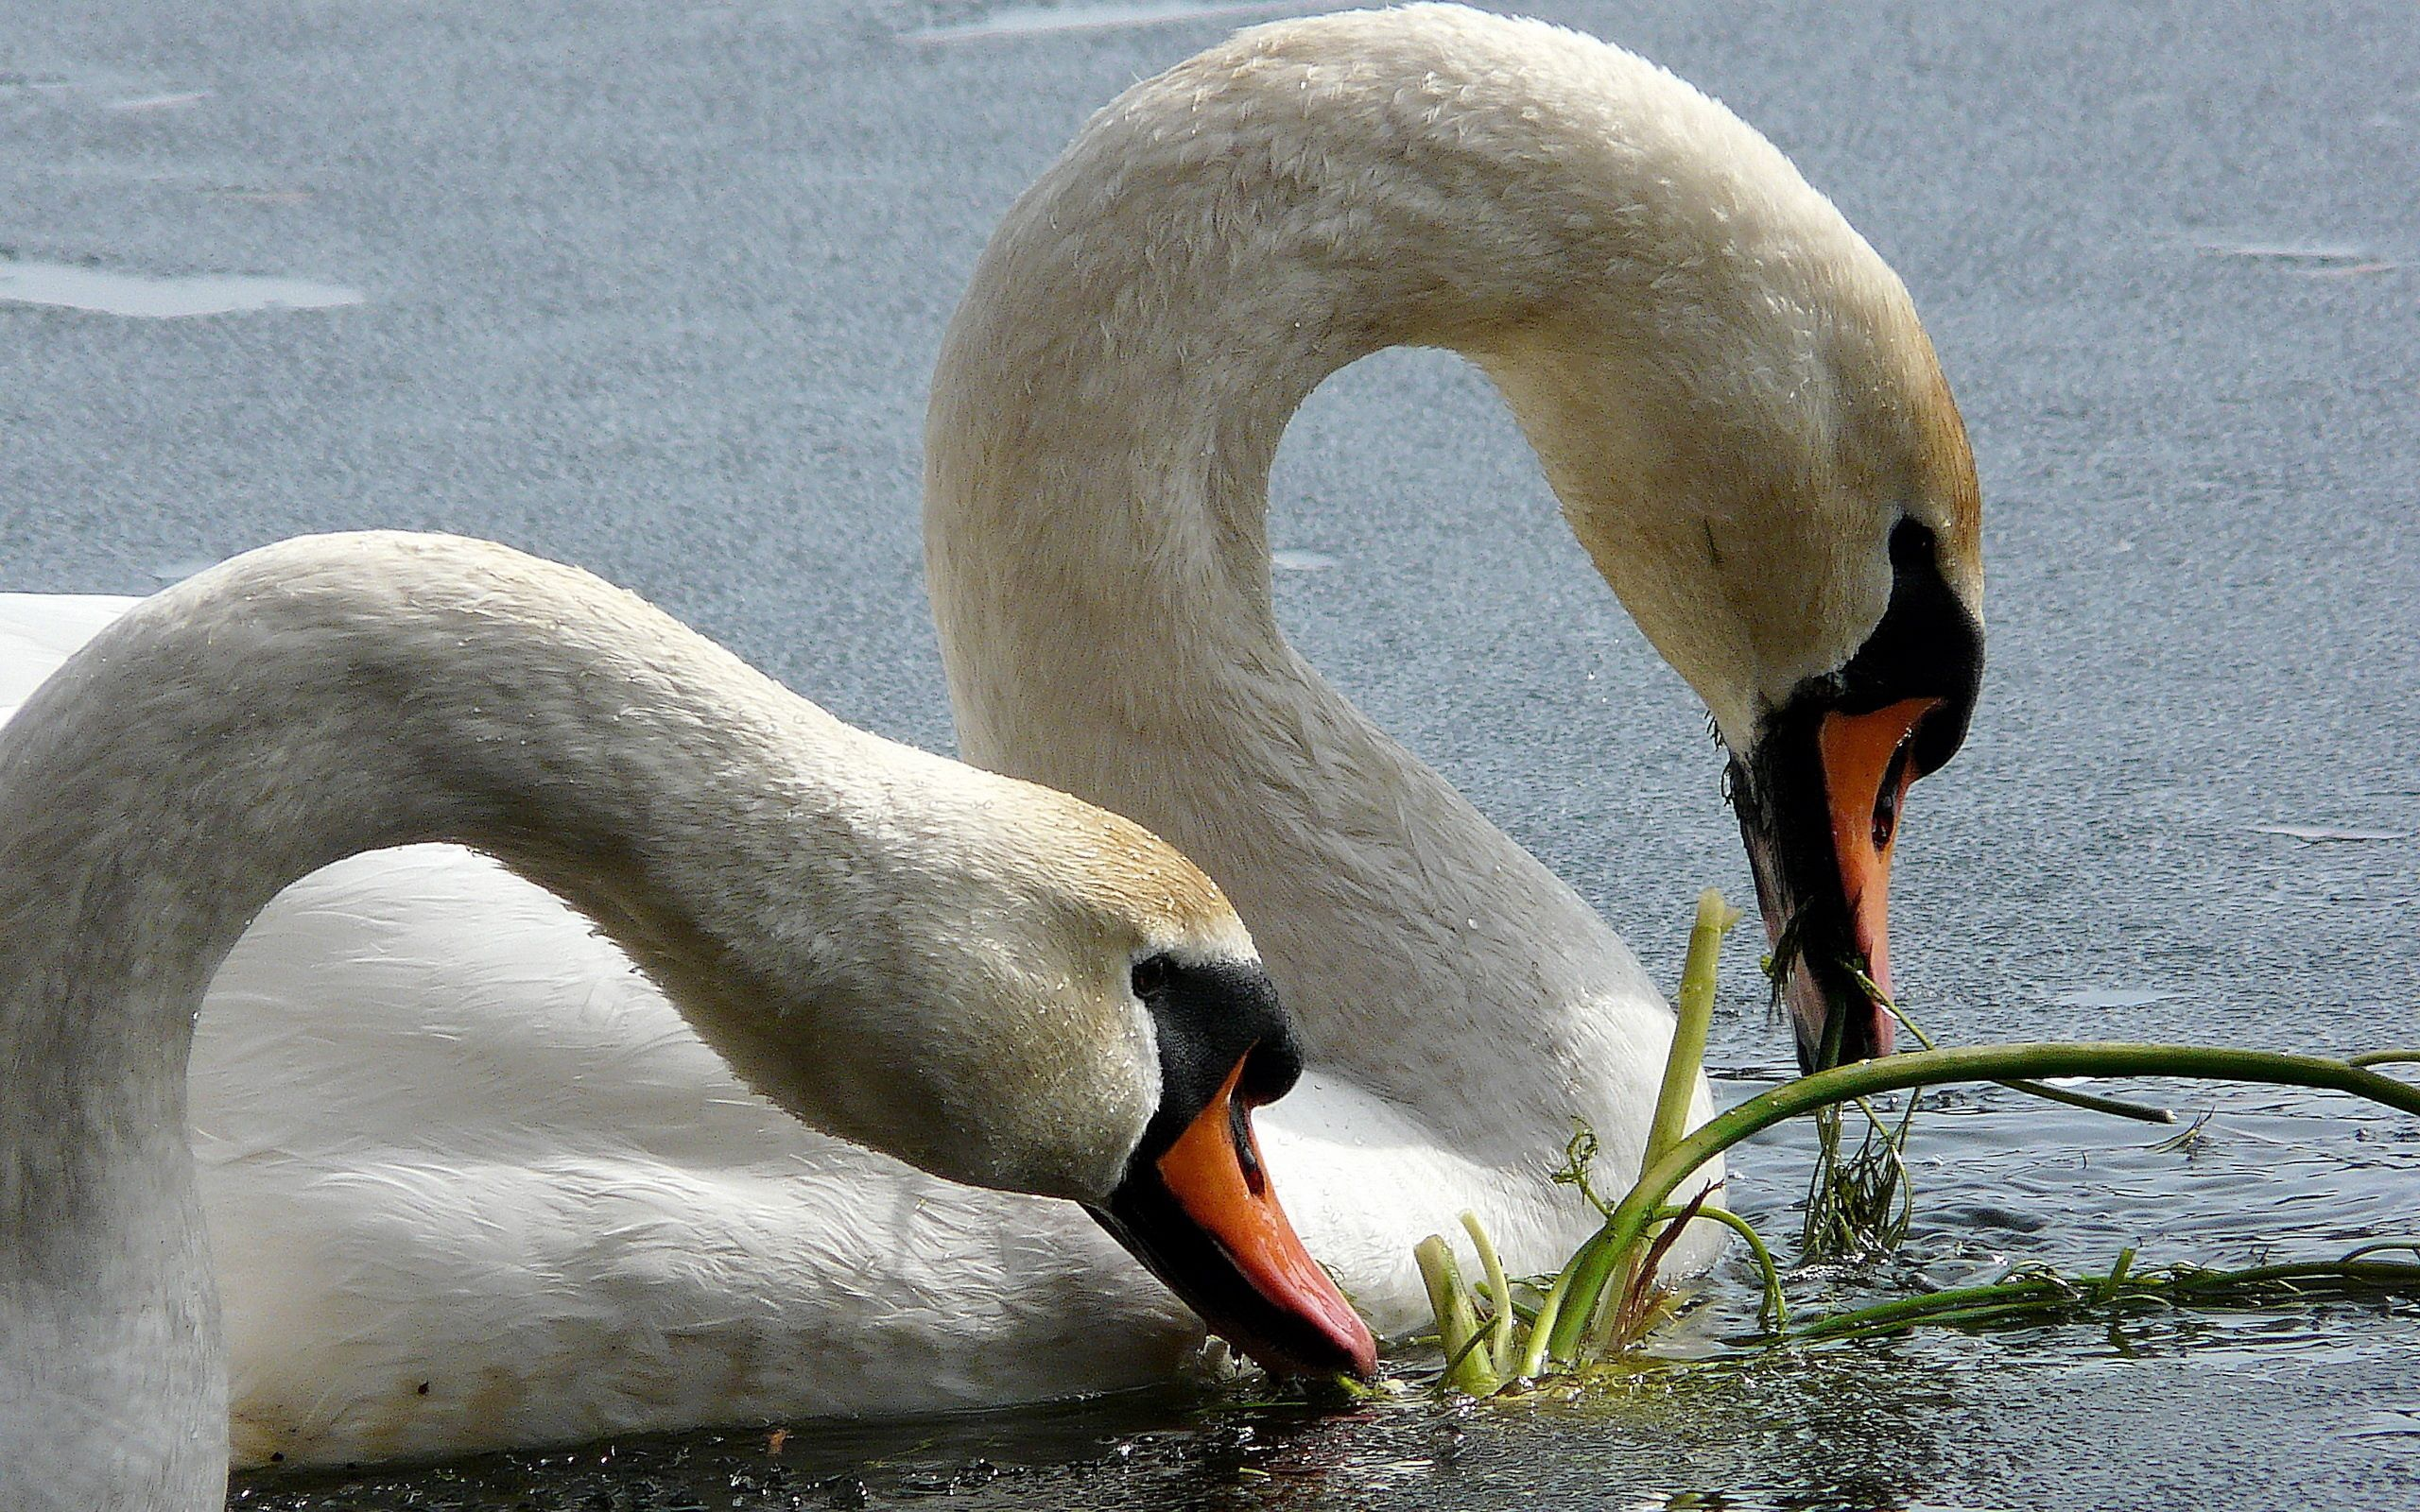 50855 download wallpaper Animals, Swans, Beak, Water, Birds screensavers and pictures for free